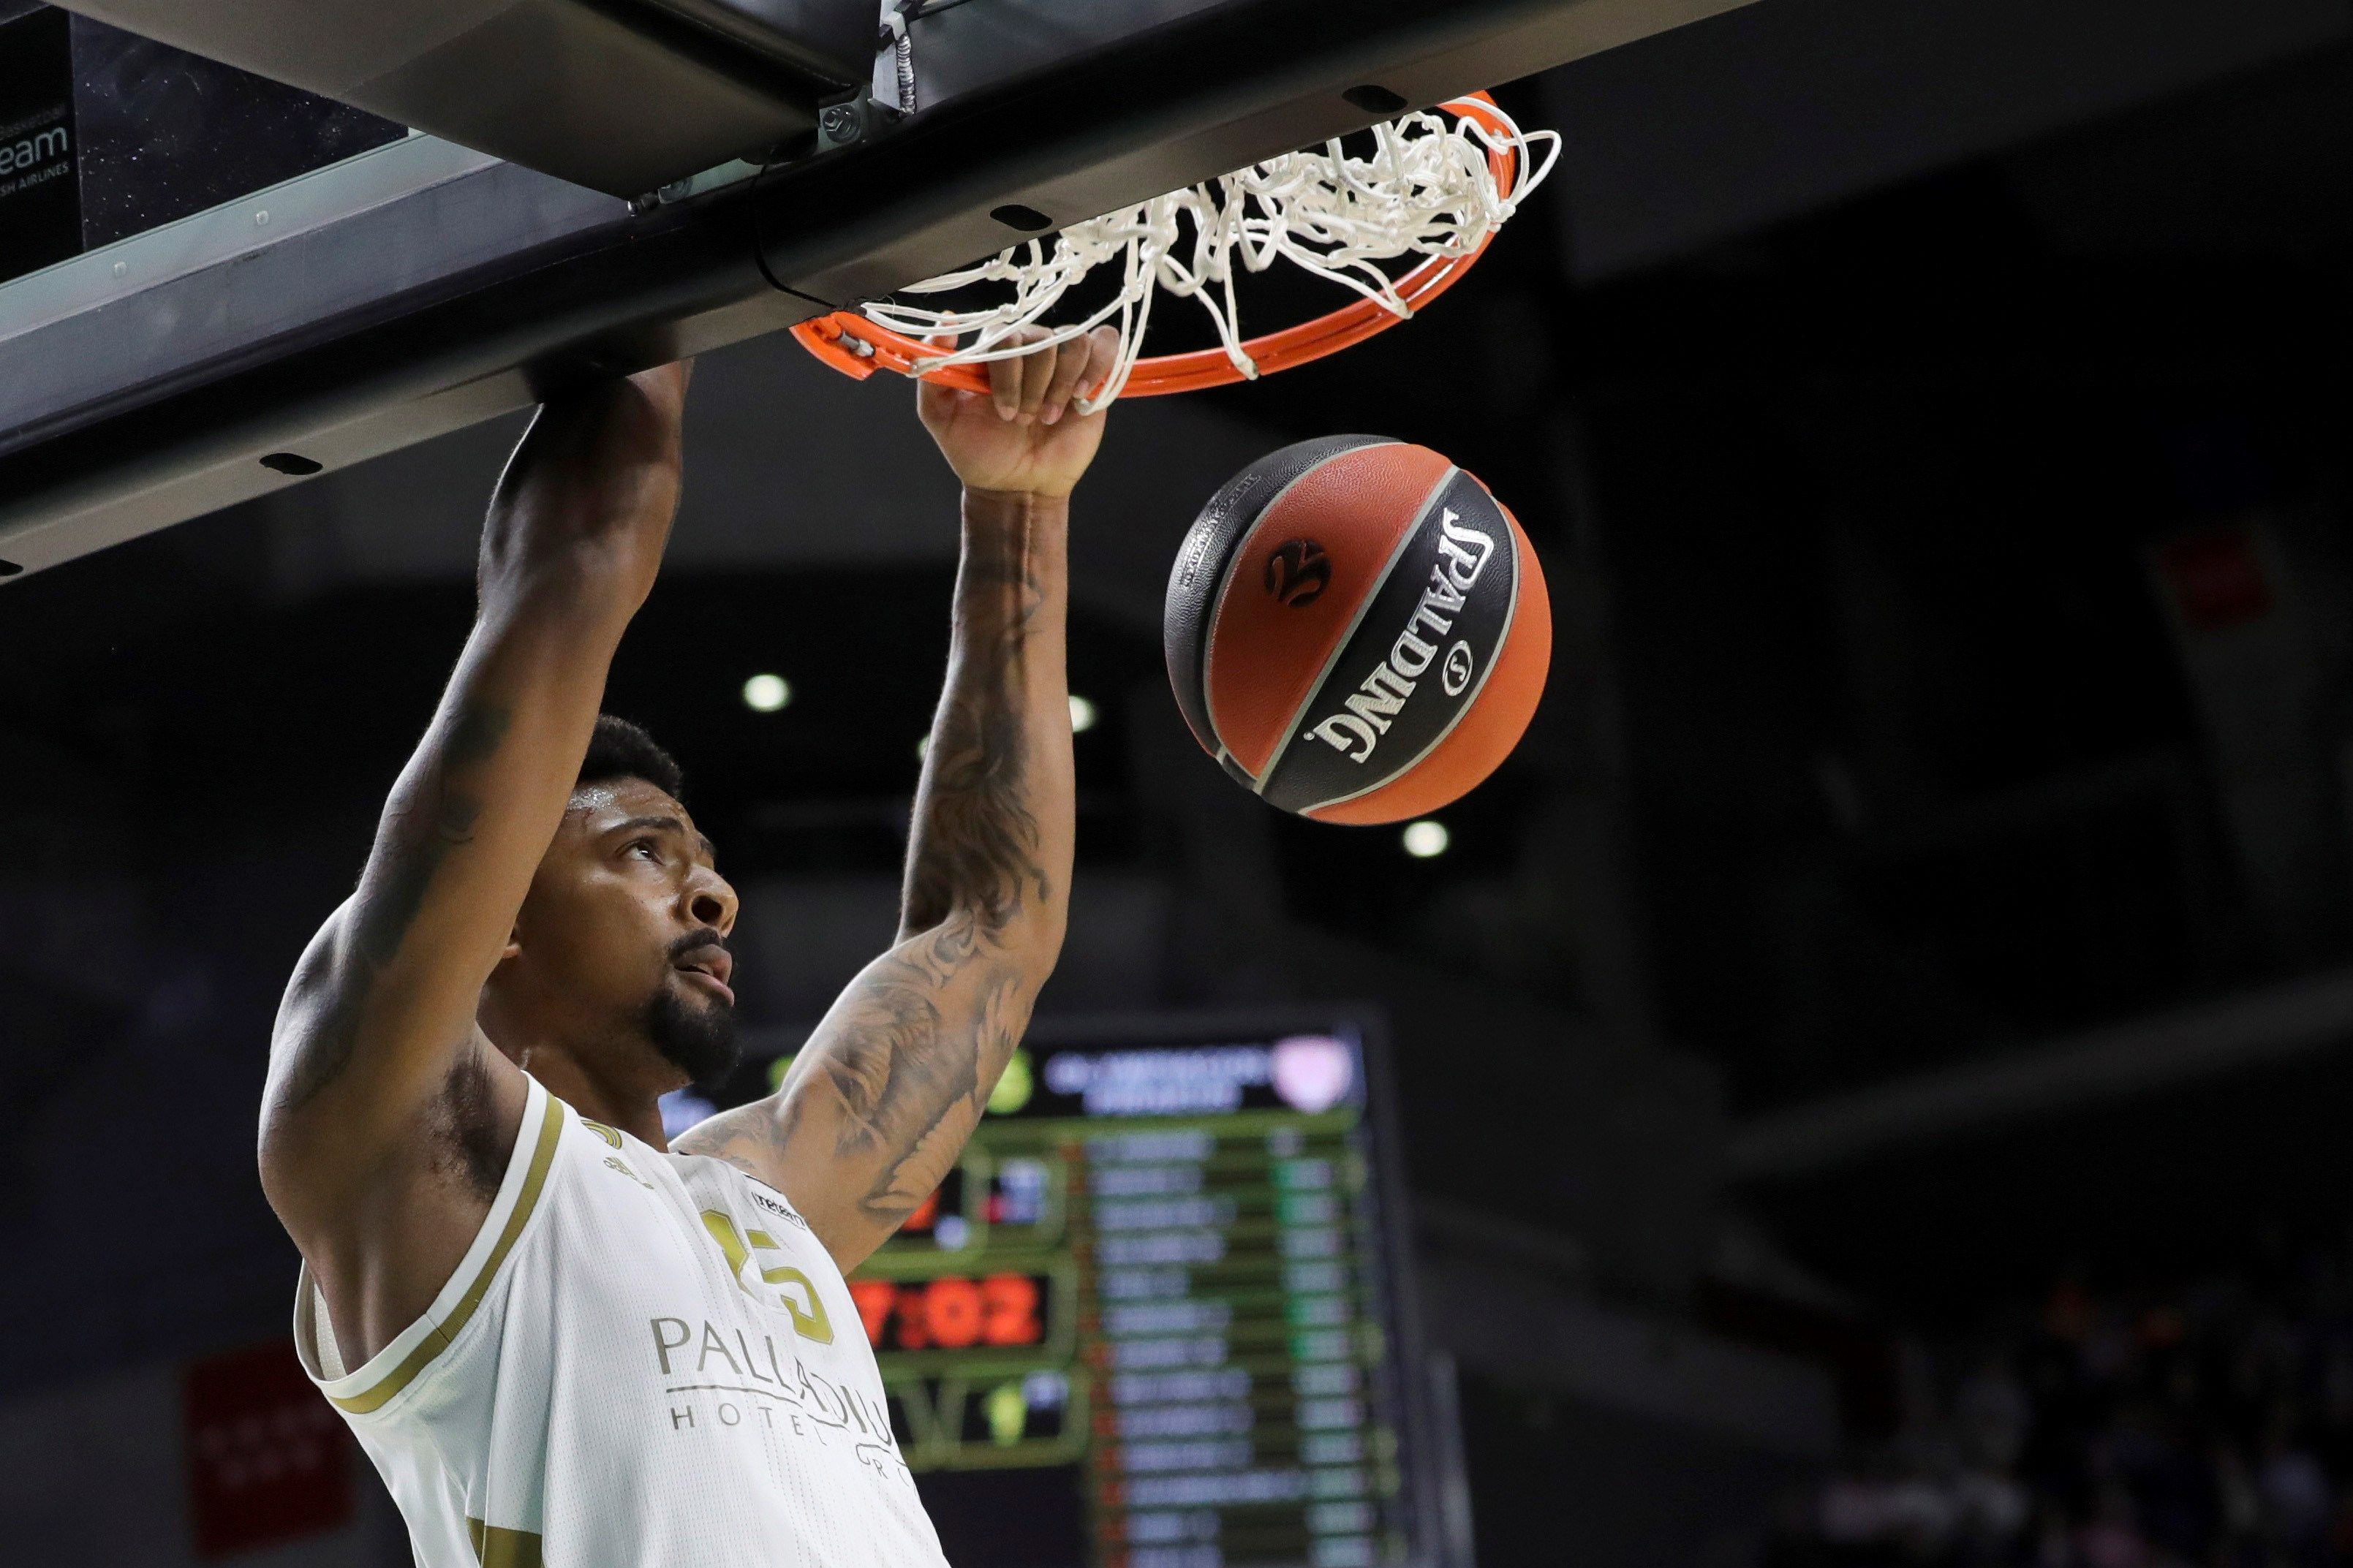 Euroleague Madrid beat Olympiacos how and when it wants